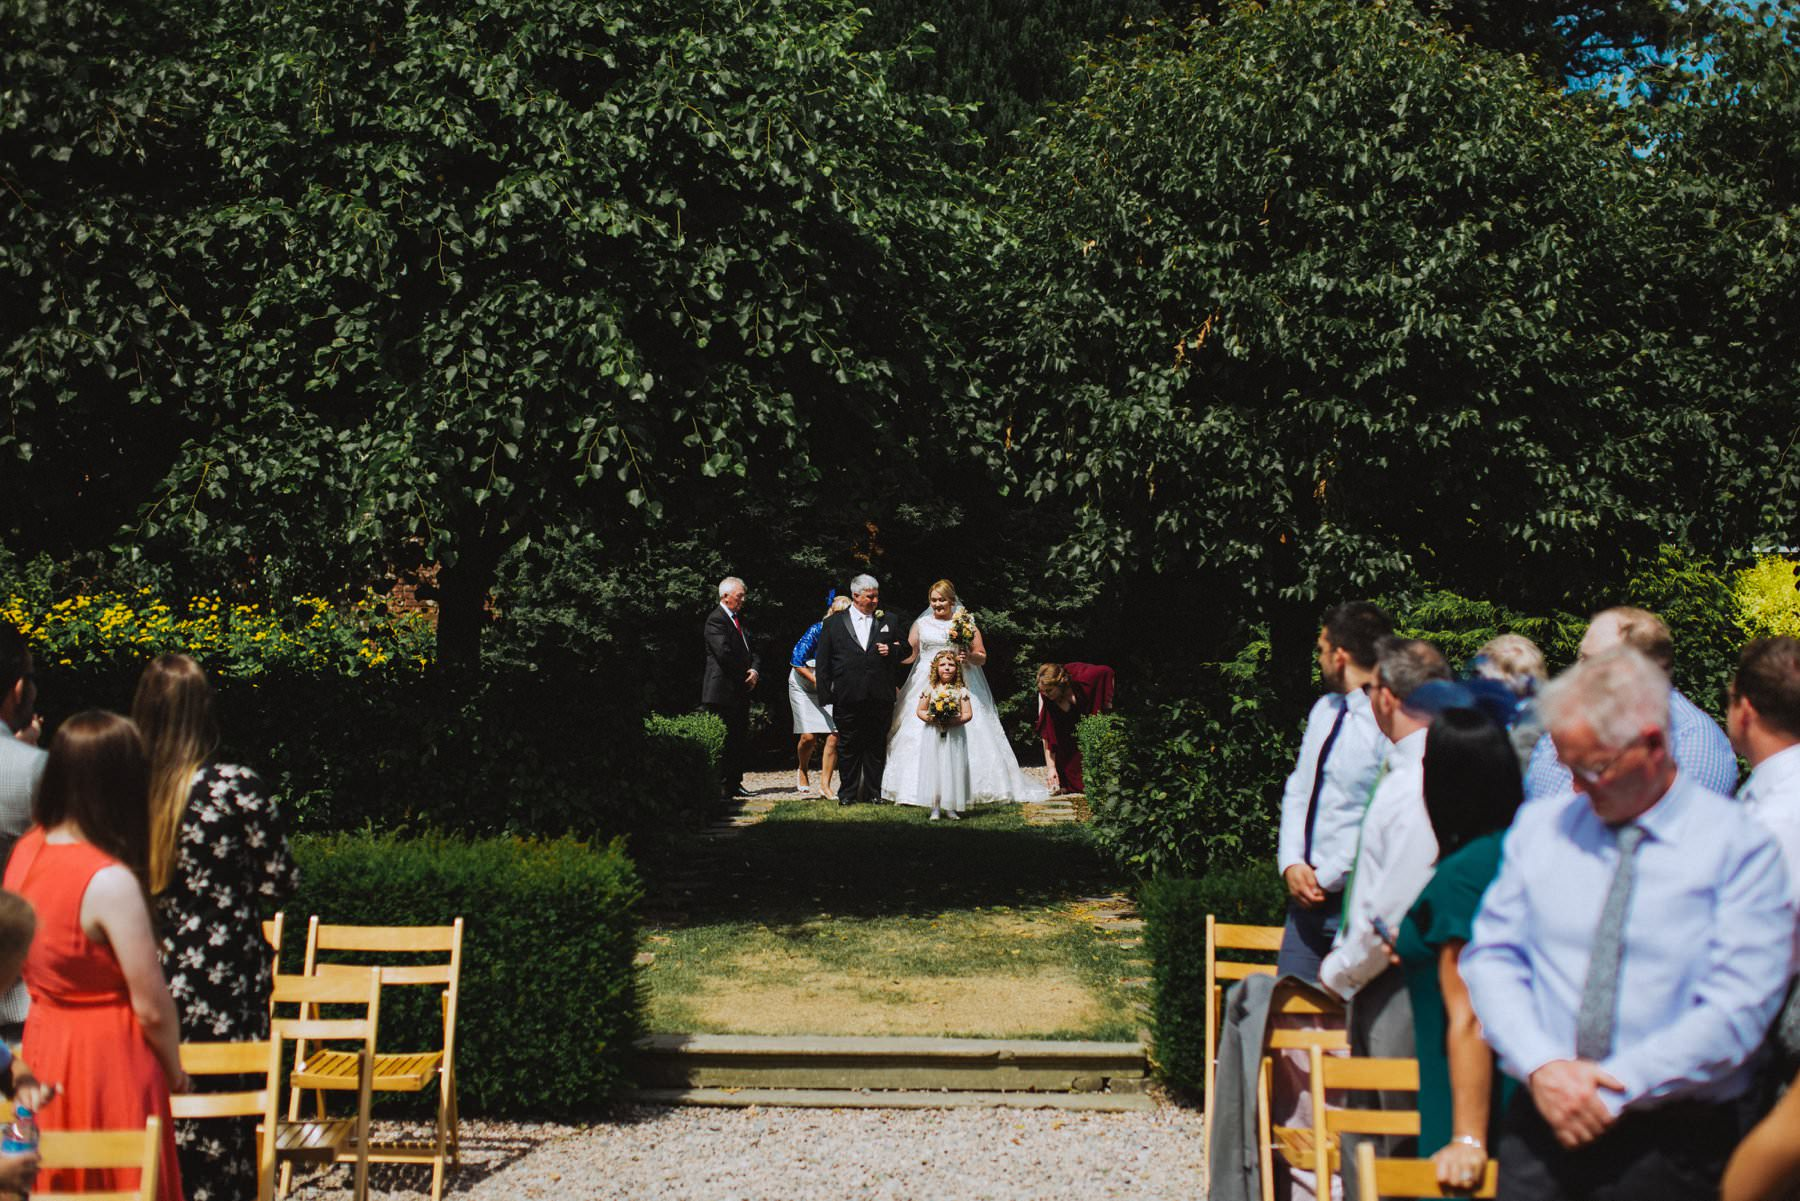 plus size bride walking down the aisle of an outdoor ceremony